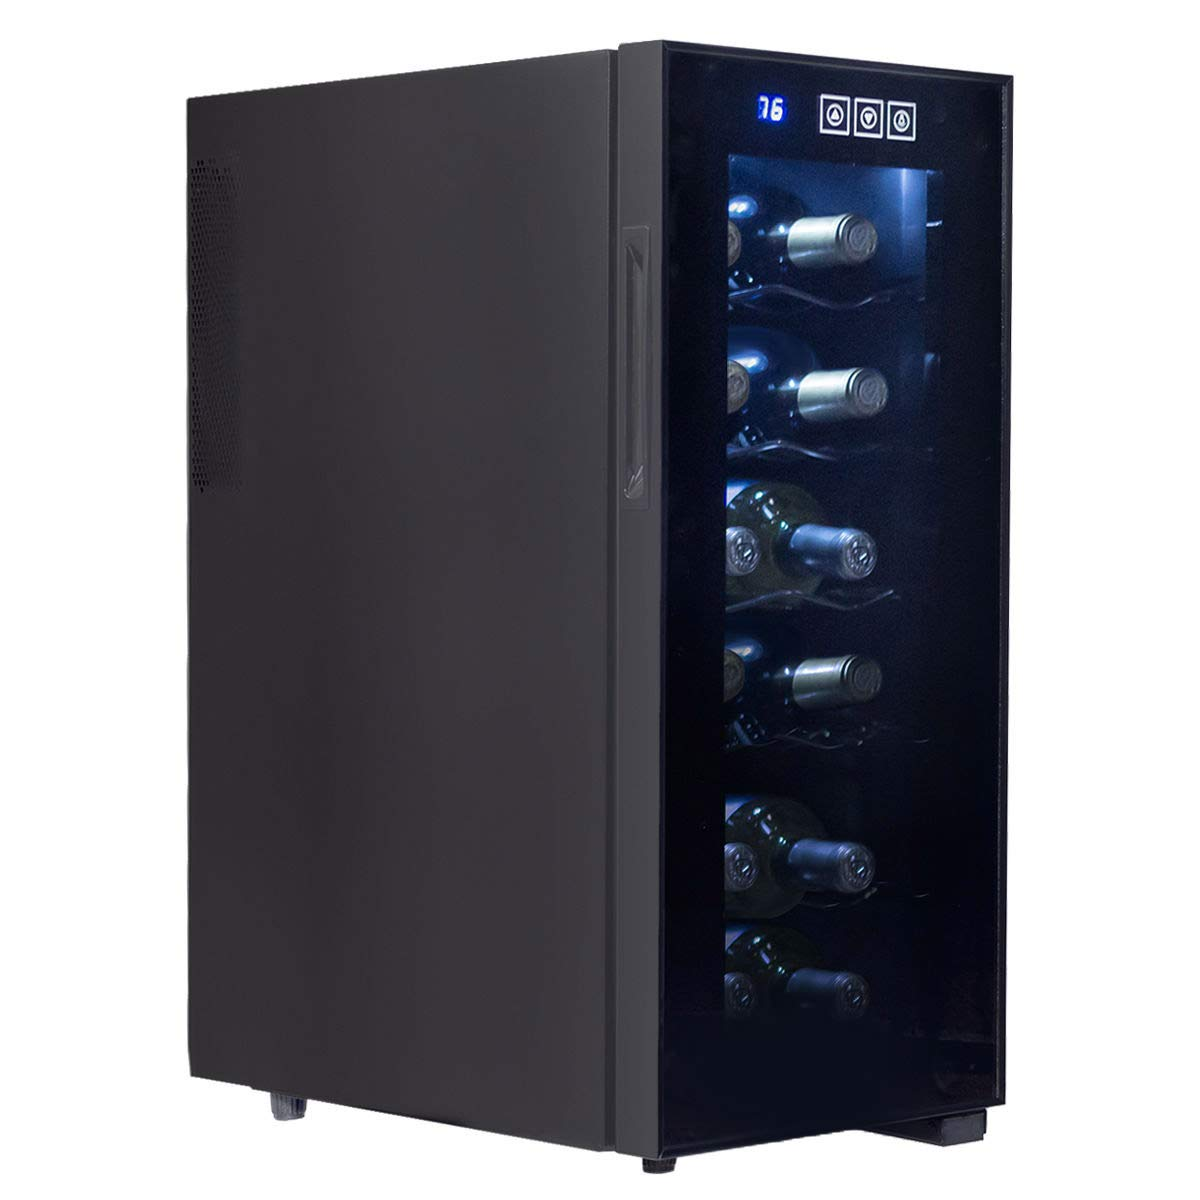 KCHEX>12 Bottle Thermoelectric Wine Cooler Freestanding Temperature Display Glass Door>This is our brand new and professional 6 bottles Thermoelectric wine cooler, which is perfect for storing your